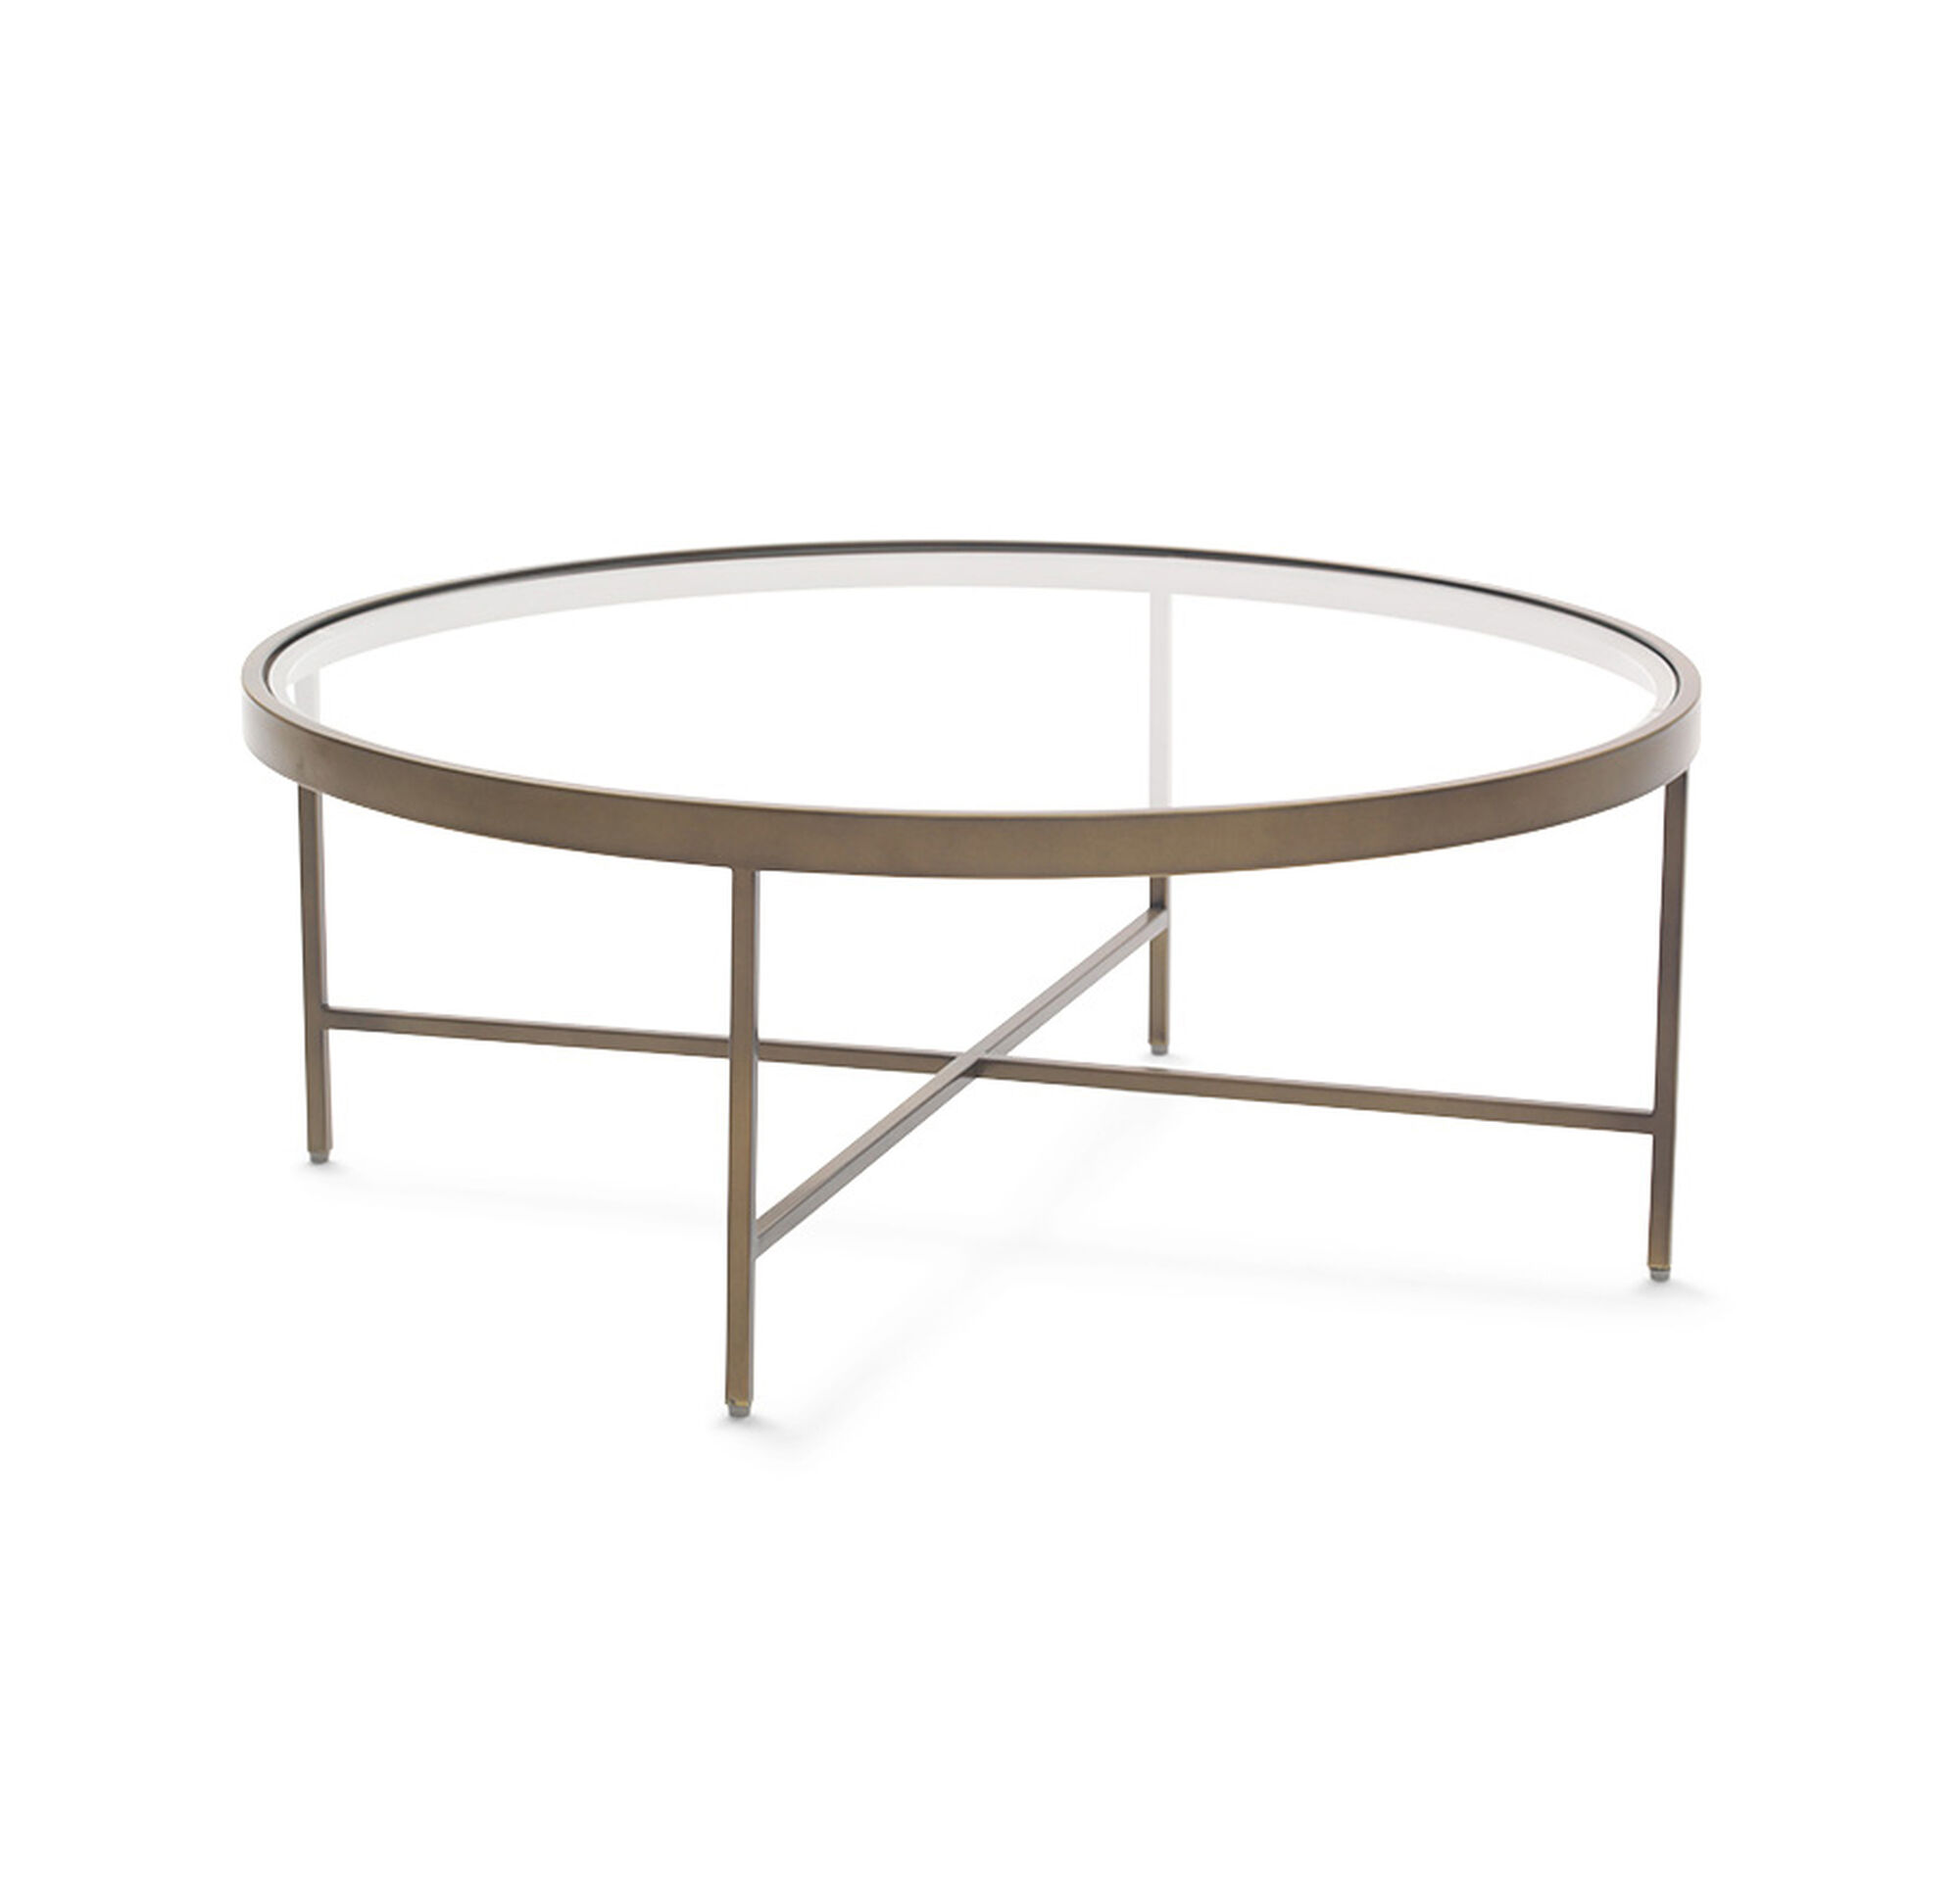 VIENNA ANTIQUE BRASS ROUND COCKTAIL TABLE